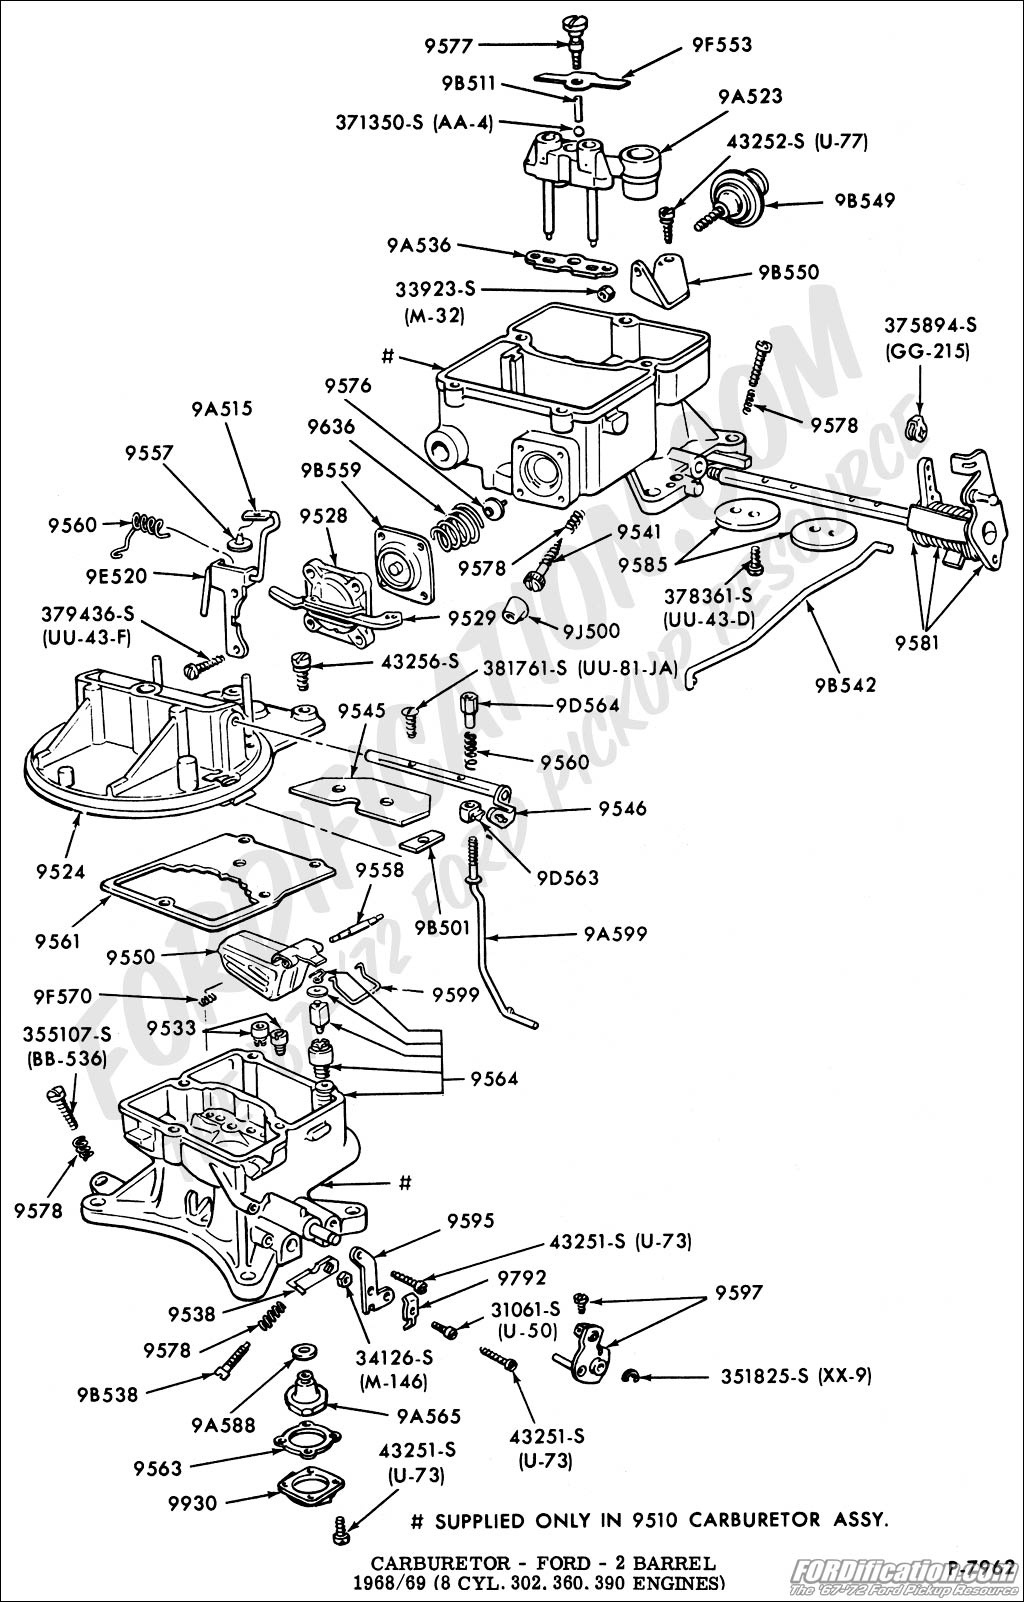 Polari 330 Carburetor Schematic